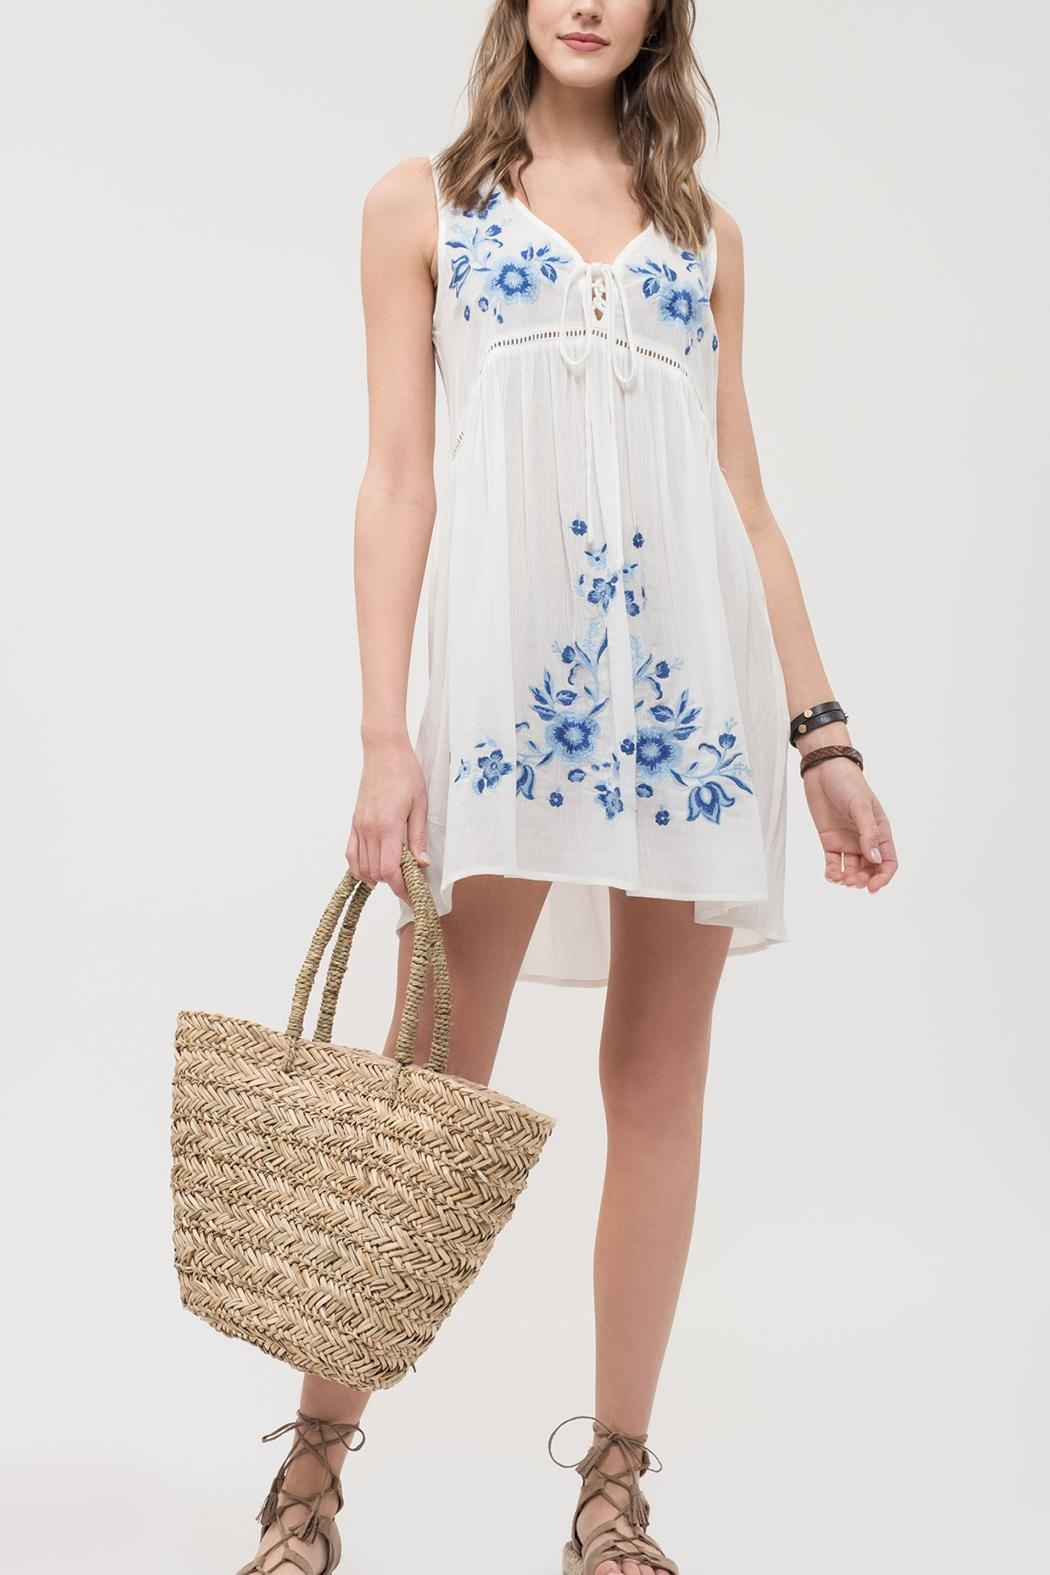 Blu Pepper Lace Up Dress - Front Full Image